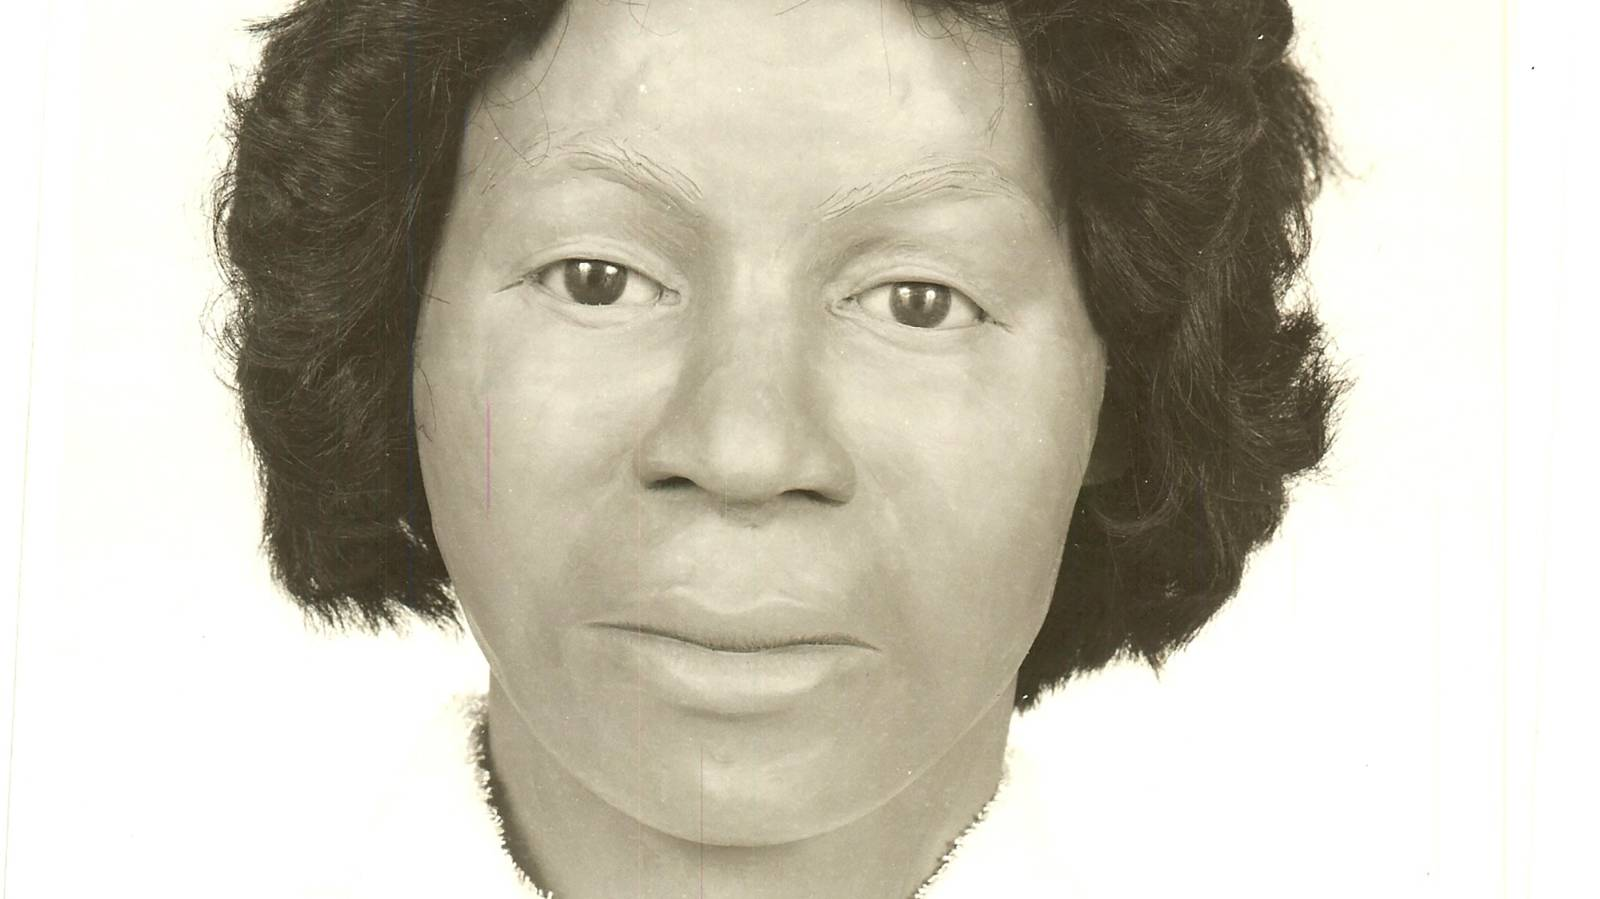 US police identify serial killer's victim 44 years later